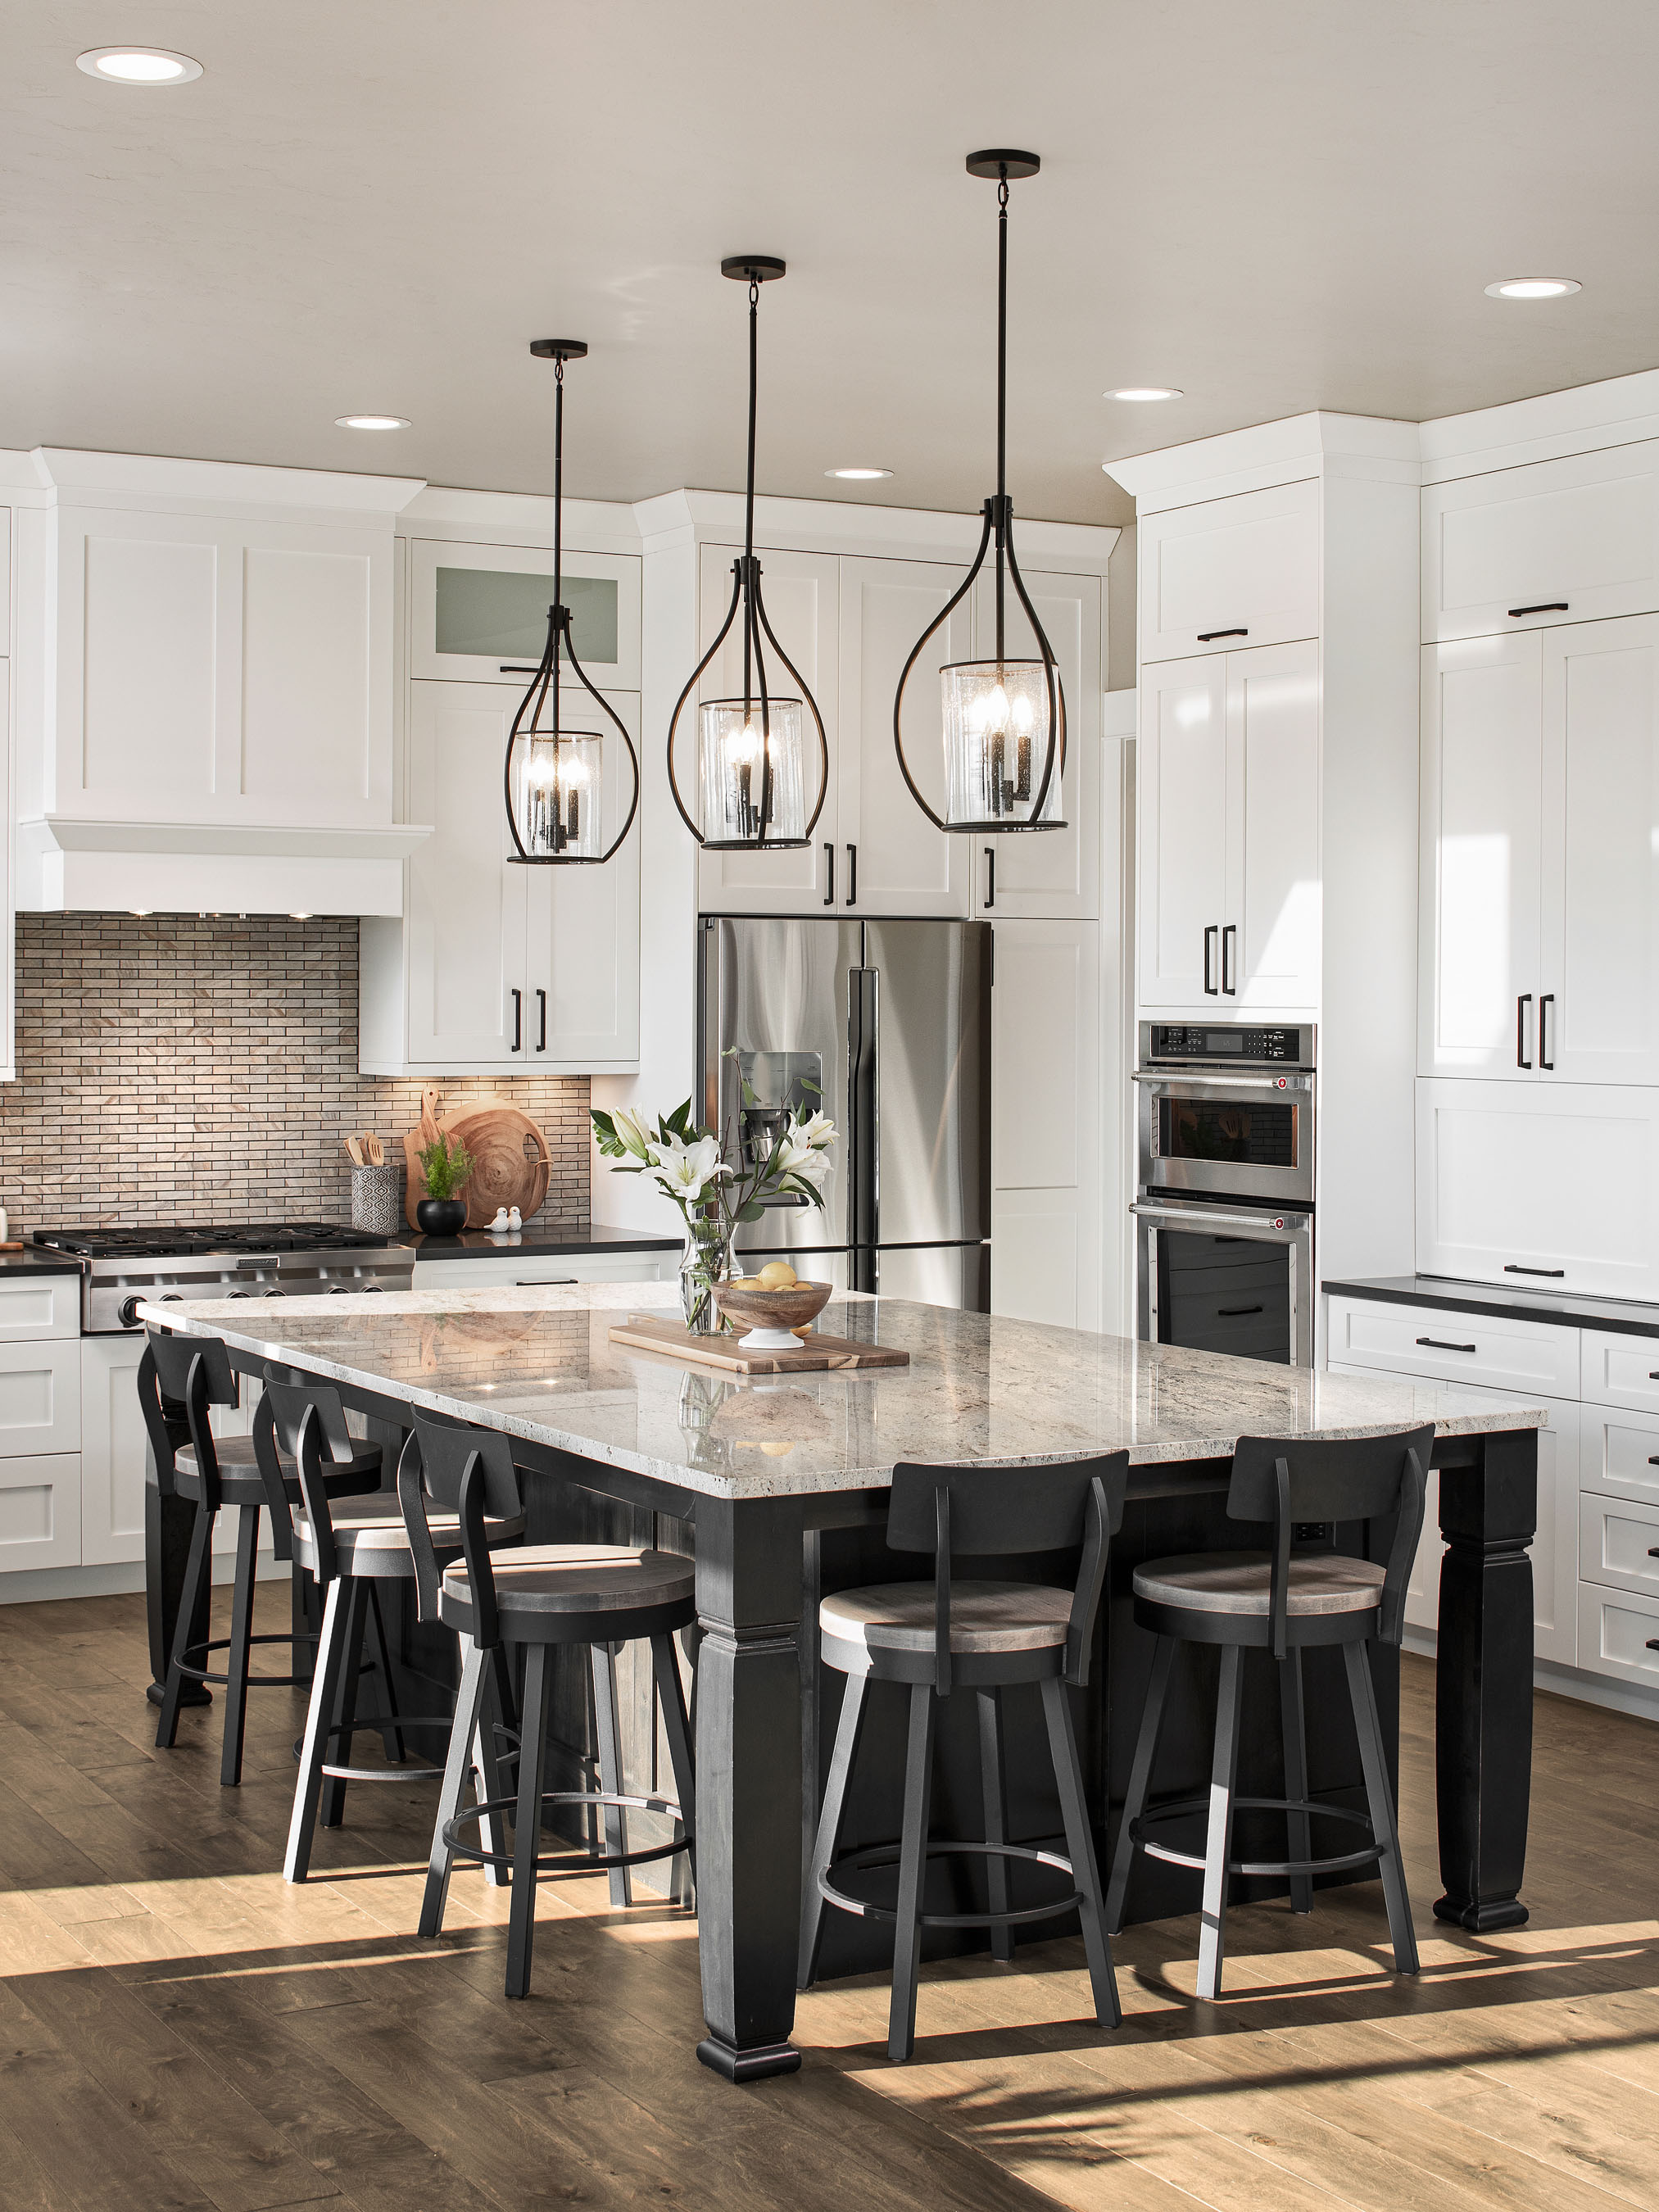 Interiors Photography • Custom Kitchen by Rentfrow Design